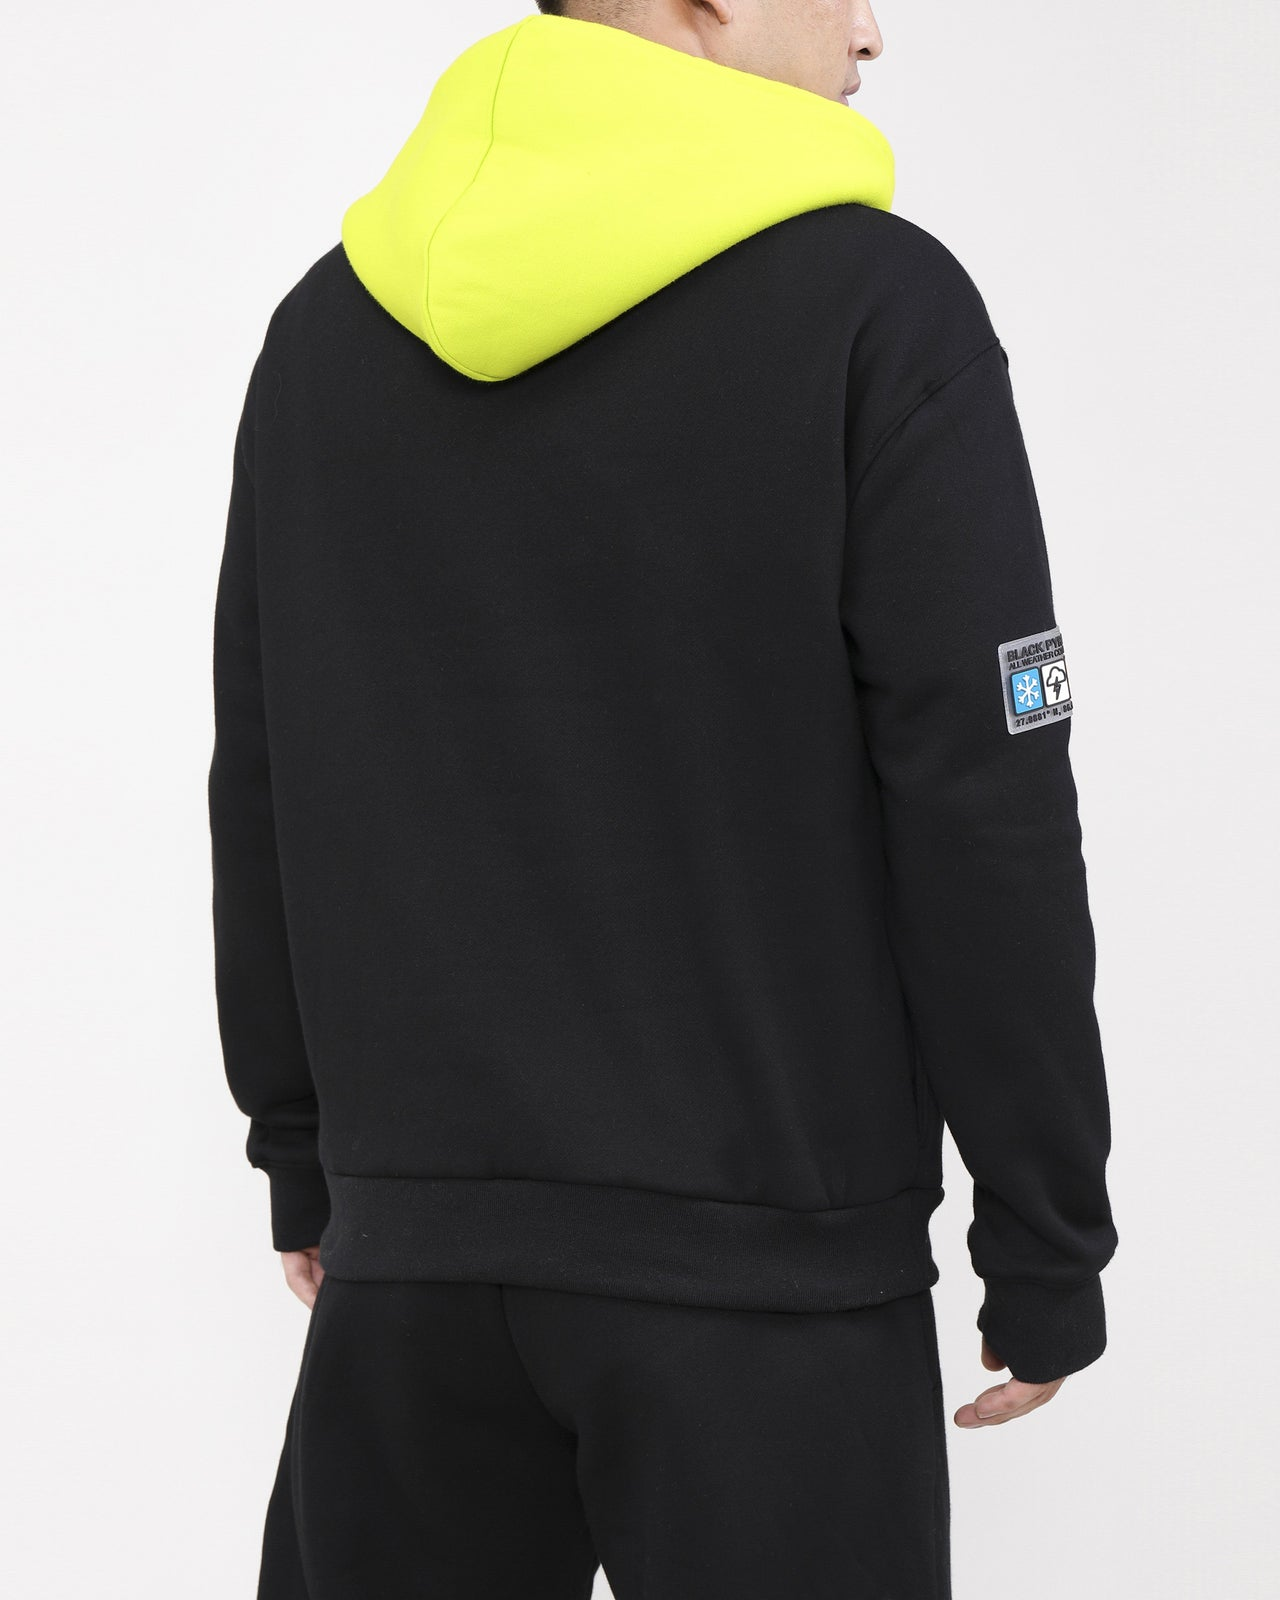 AWC HOODY-COLOR: BLACK